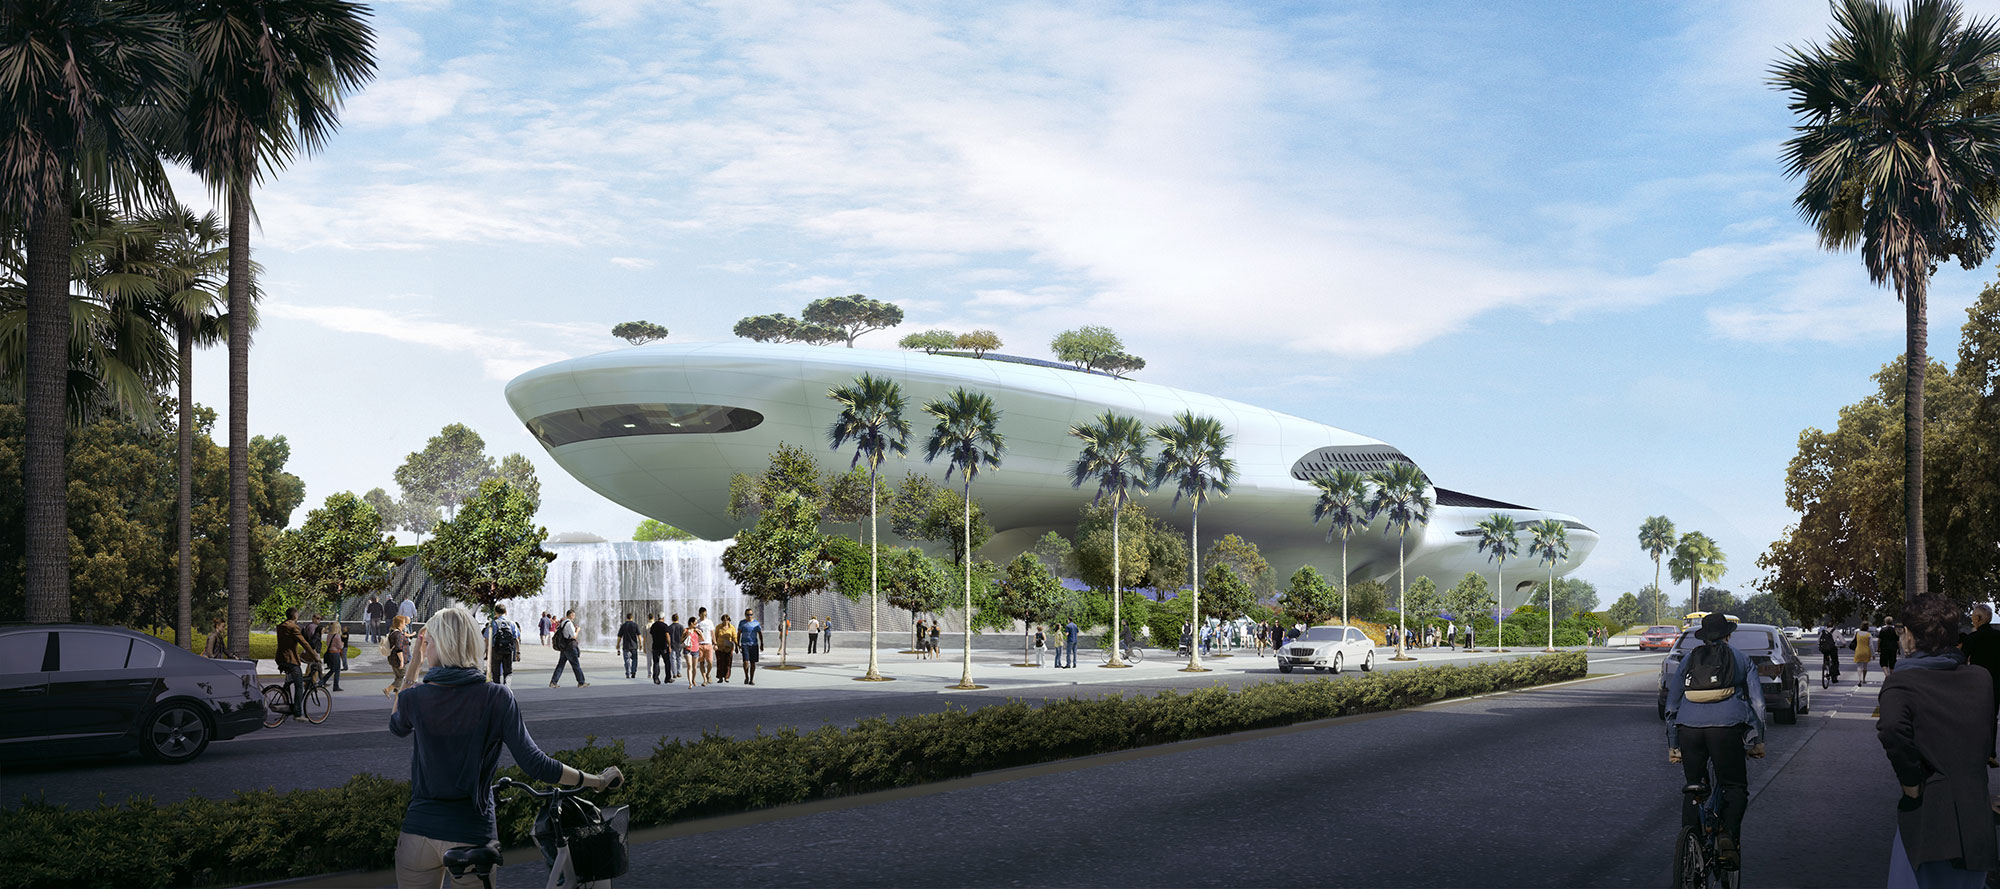 Rendering of the Lucas Museum within Exposition park